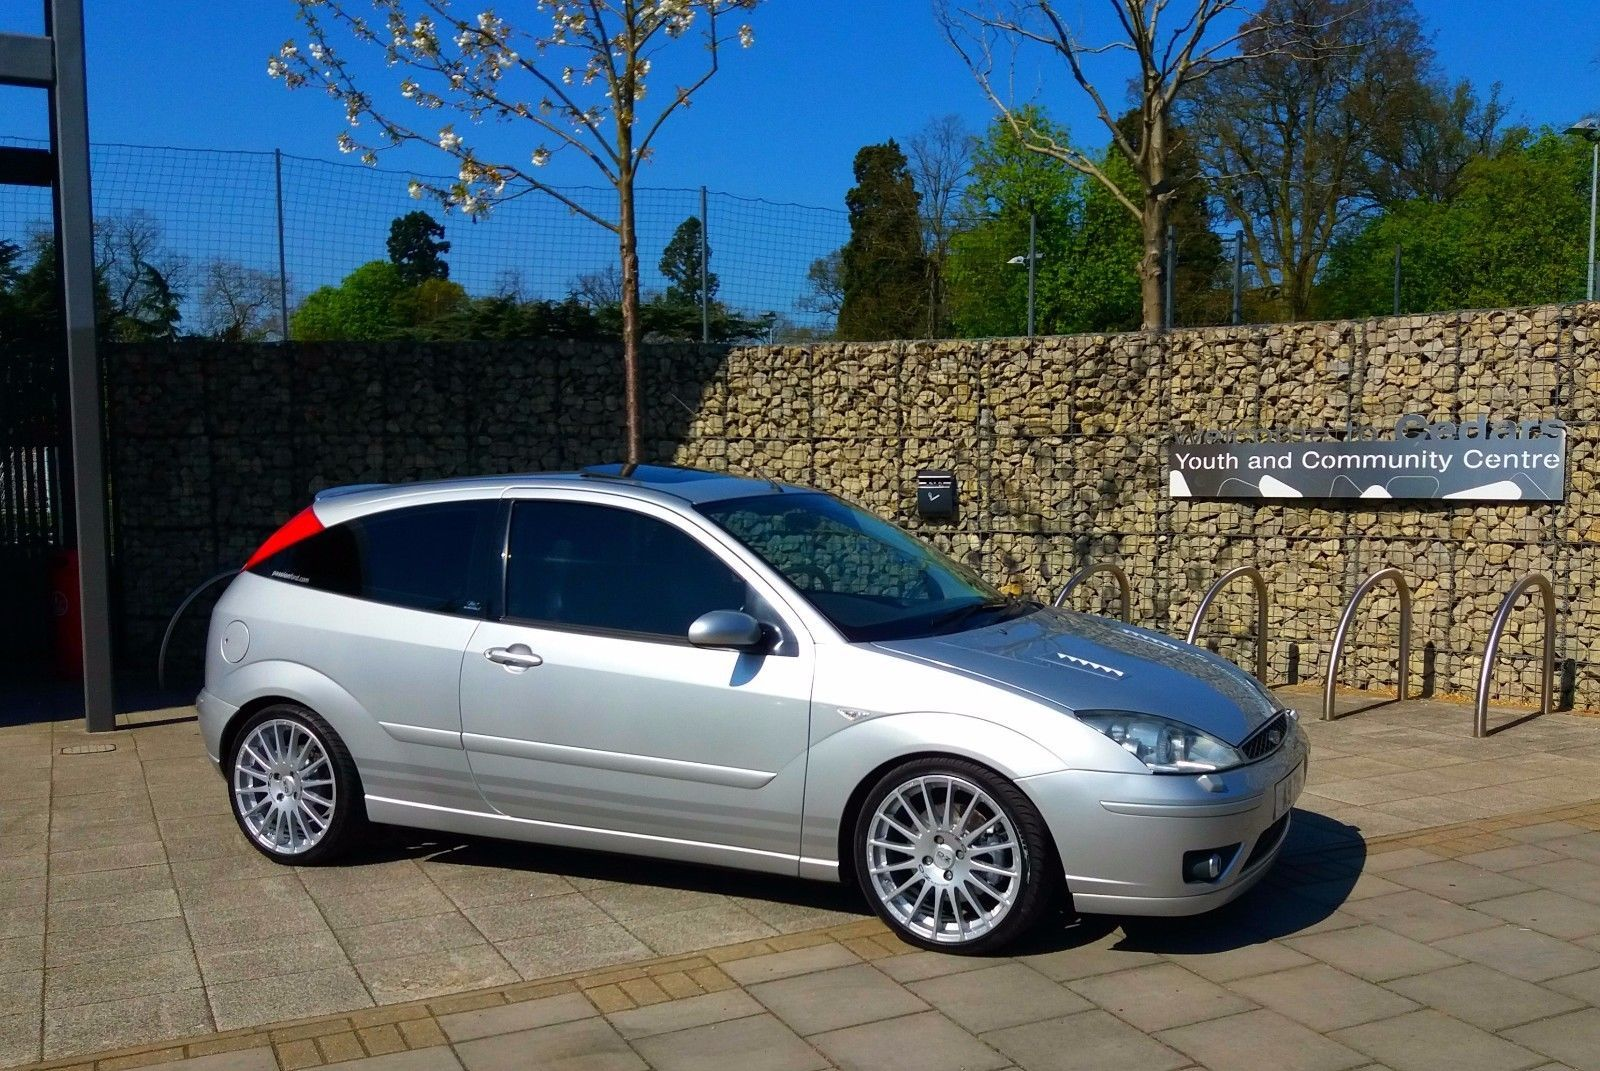 Check Out This Fast Ford Ford Focus St170 2003 Ex Dealer Demo